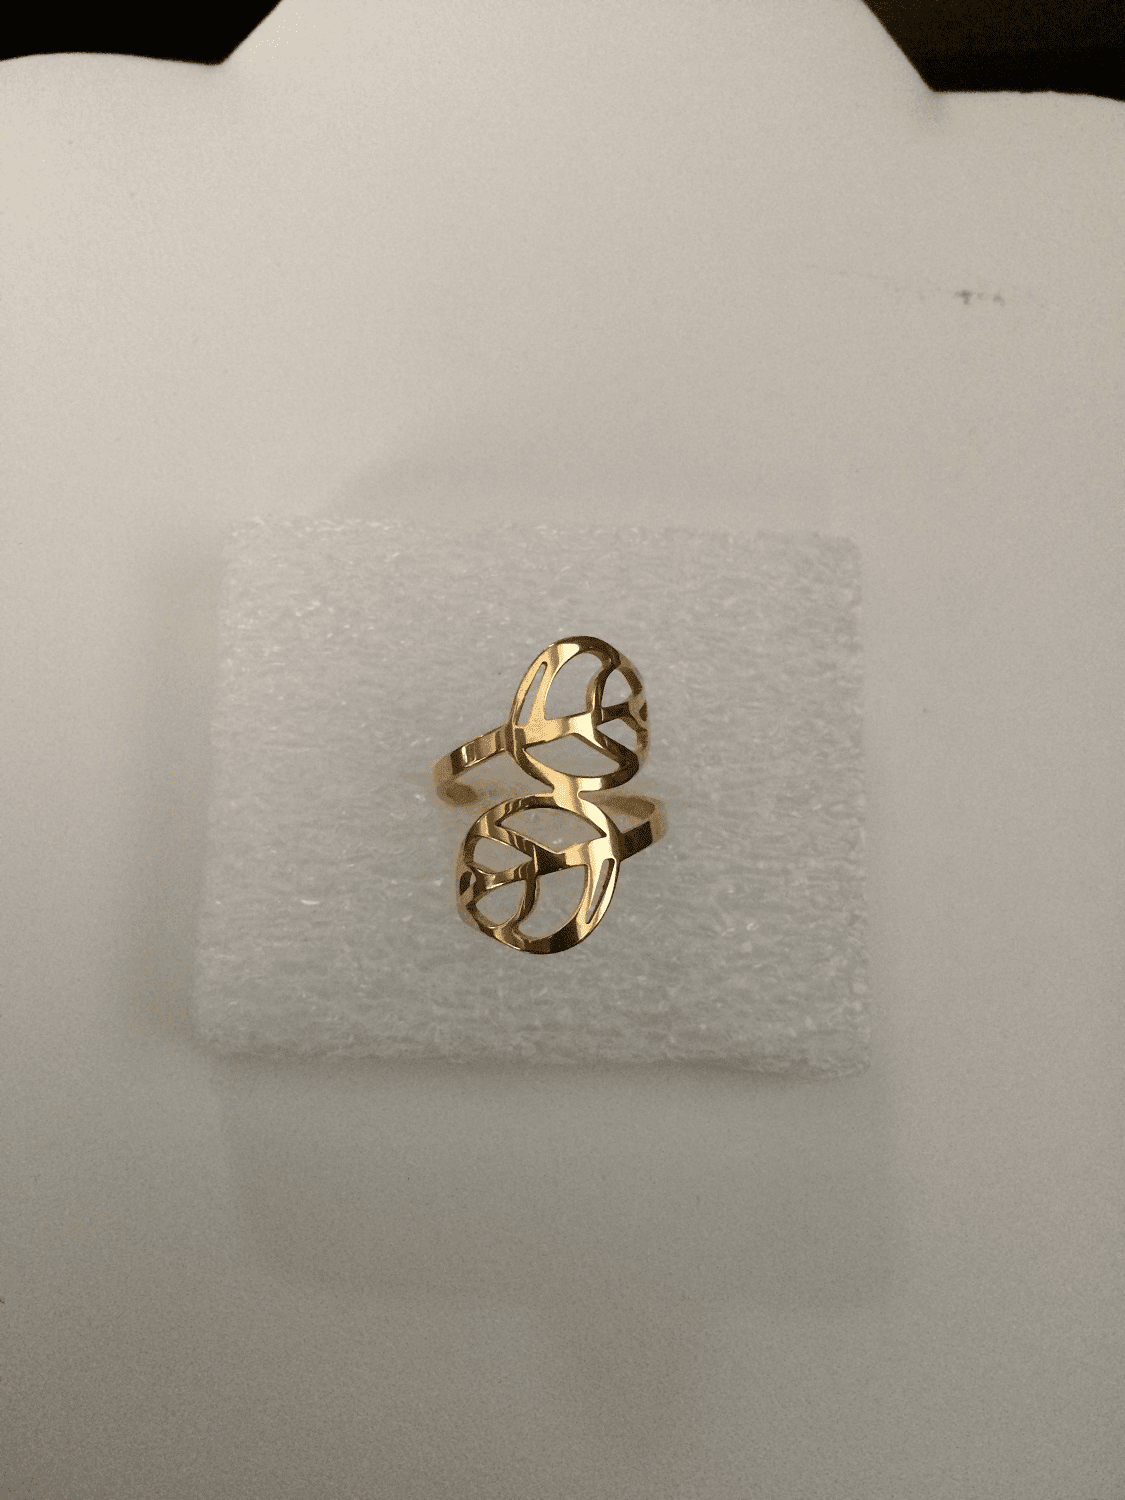 Golden Leaf Stainless Steel Ring - Size 8.5